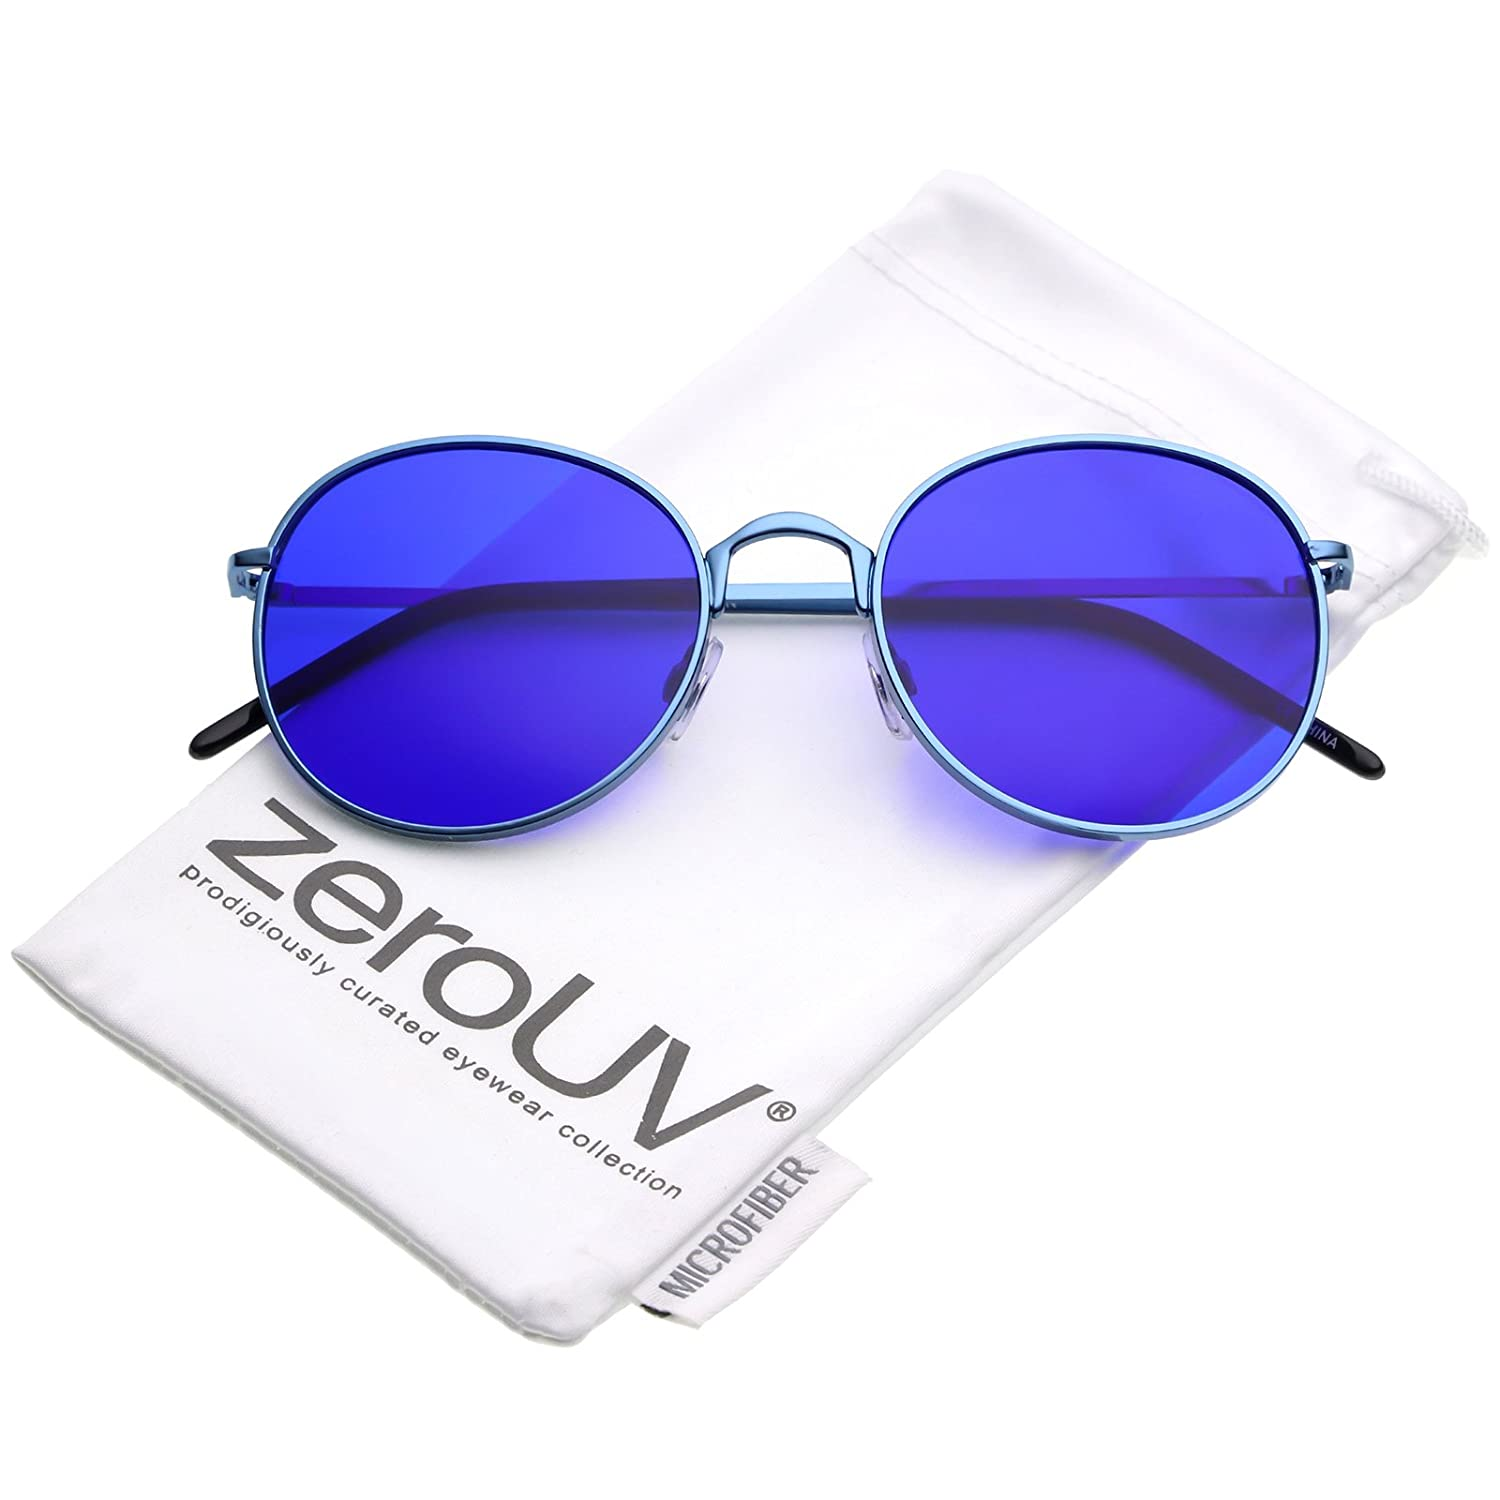 841f7a1425398 Amazon.com  zeroUV - Bold Full Metal Frame Color Tinted Flat Lens Round  Sunglasses 52mm (Blue Blue)  Clothing